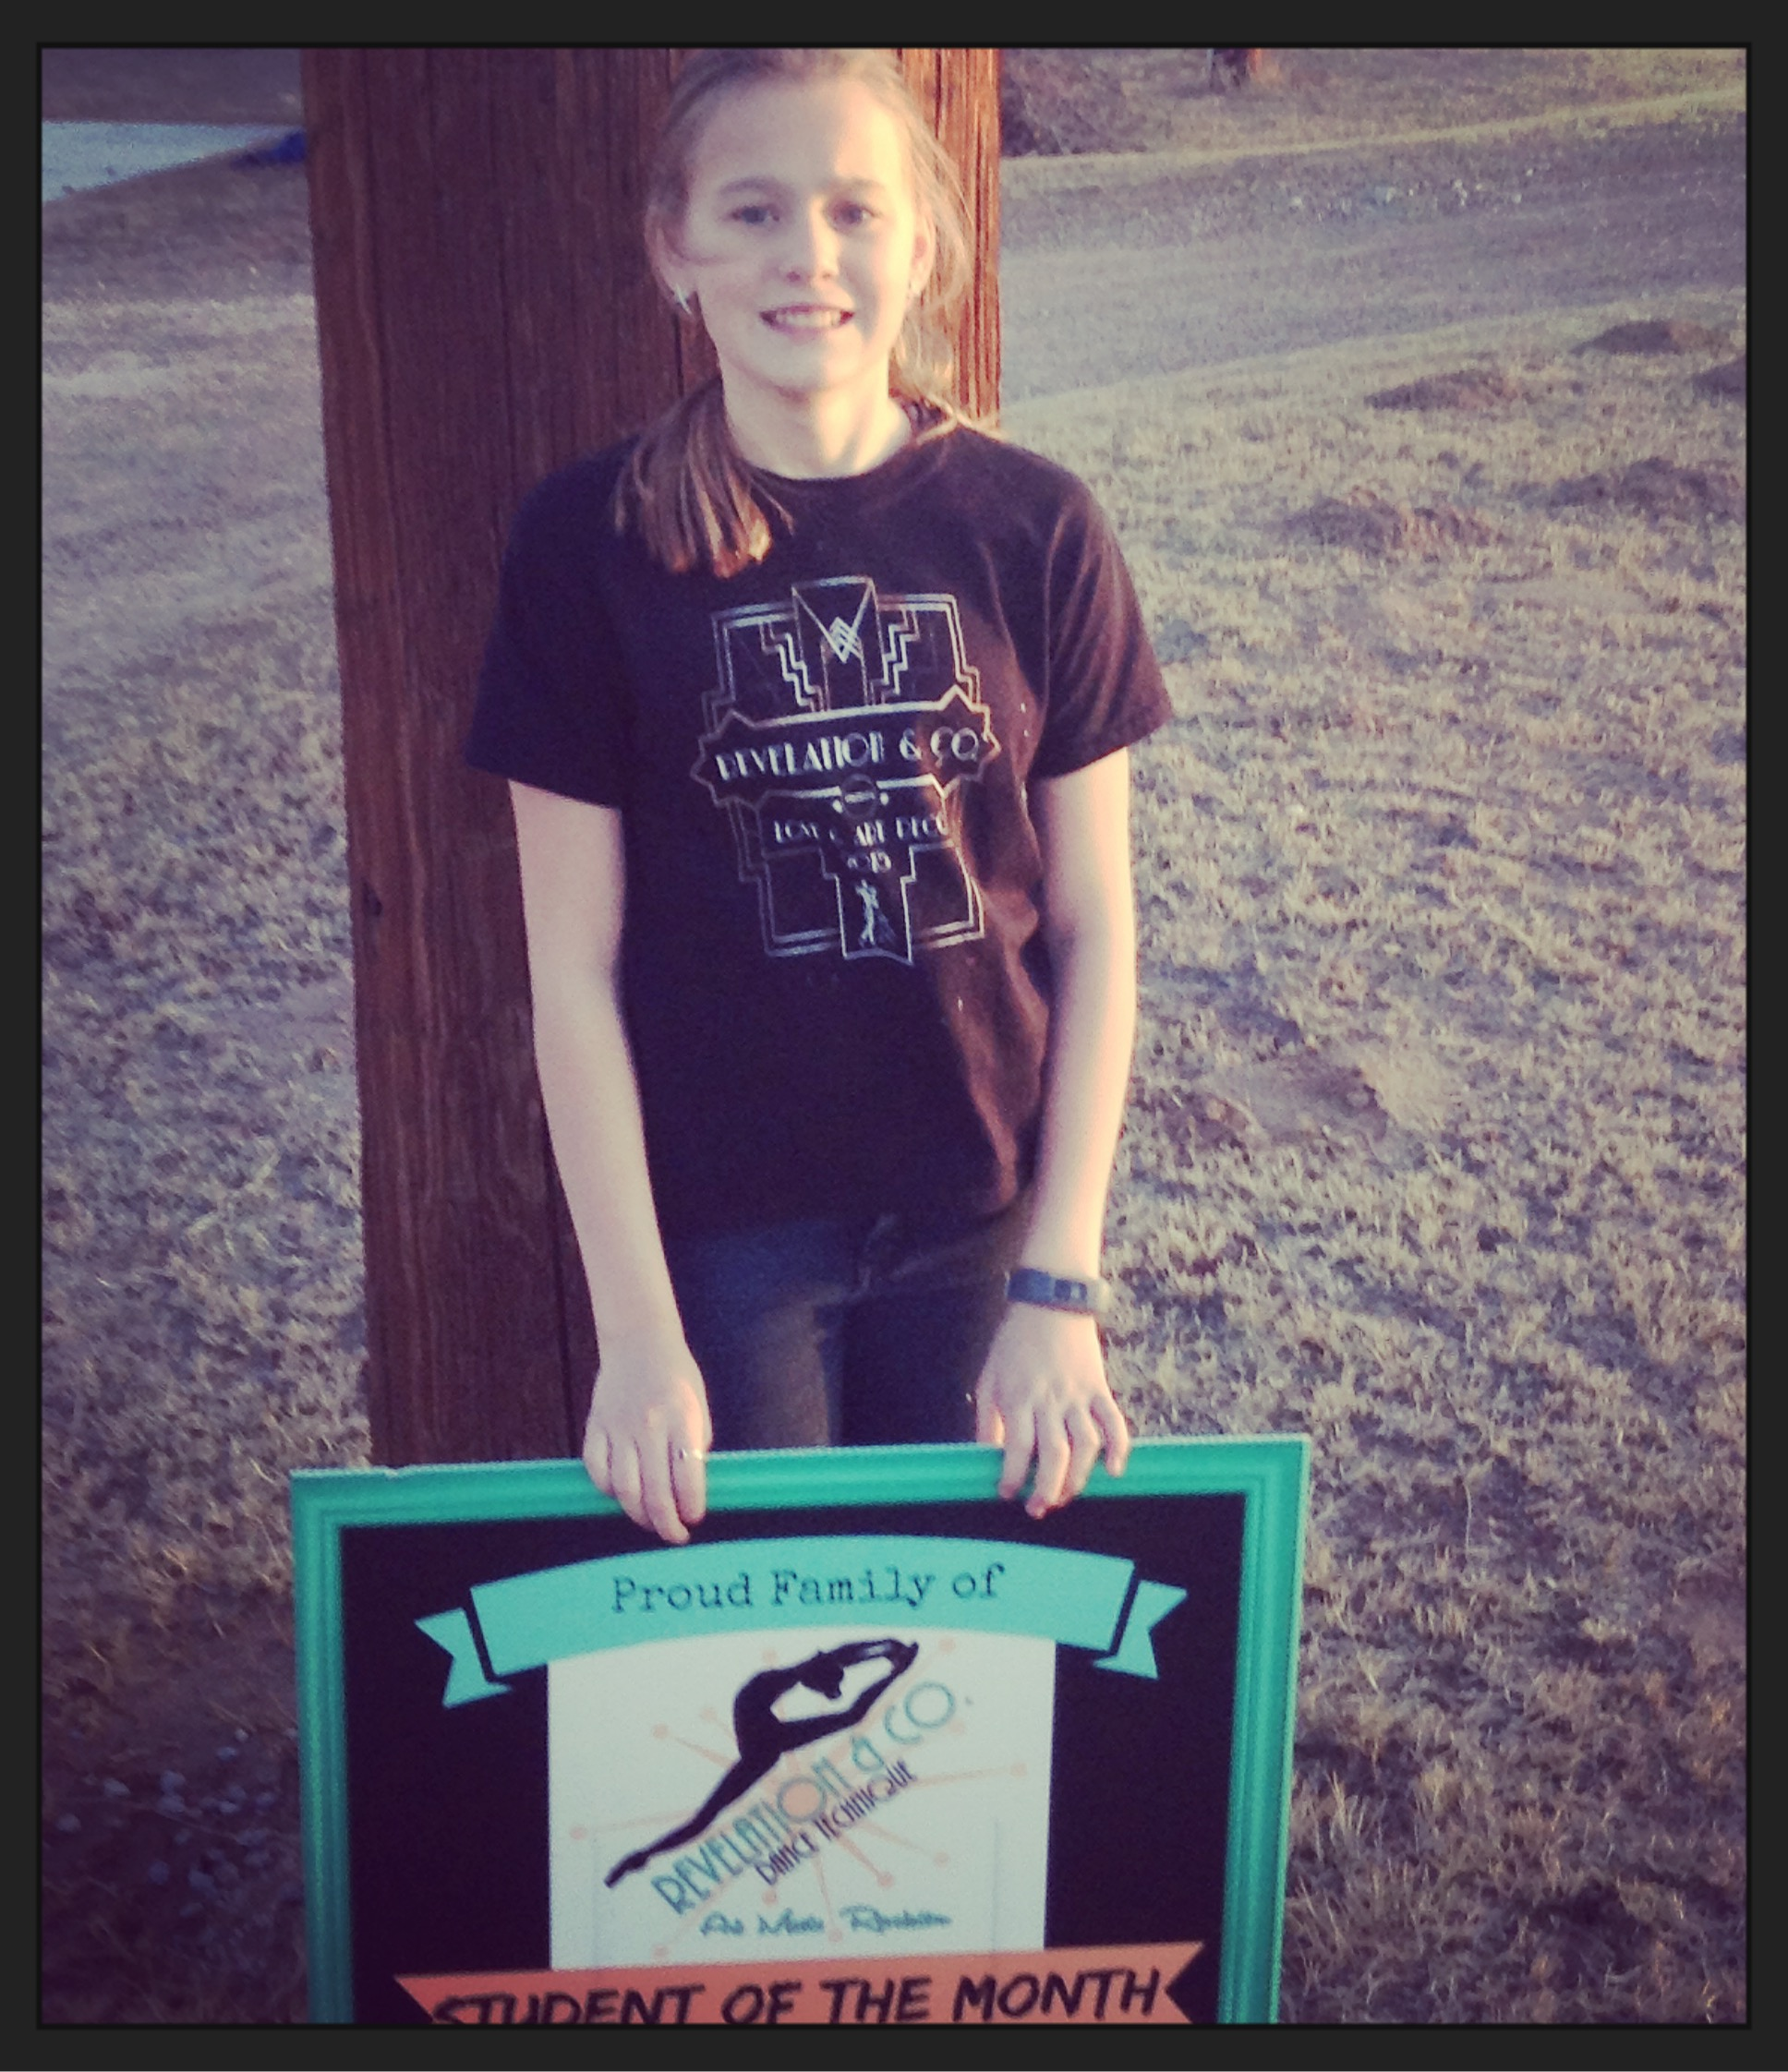 Woodward dance studio student of the month